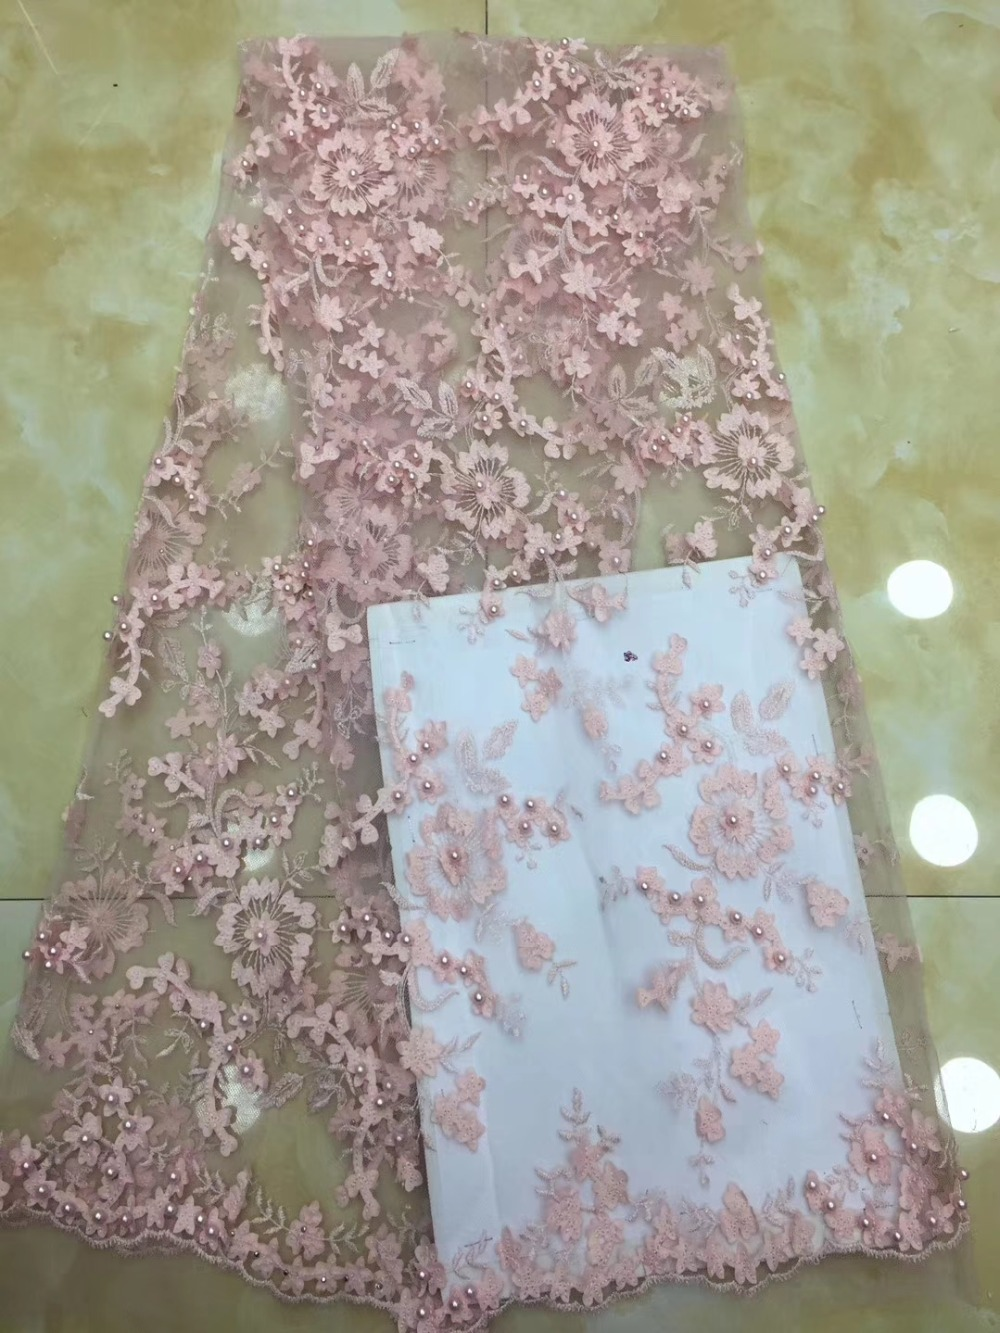 Tulle Fabric Lace High Quality Latest African Laces With Stones Nigerian Tulle French Net Lace Fabric For Party    DPJU183Tulle Fabric Lace High Quality Latest African Laces With Stones Nigerian Tulle French Net Lace Fabric For Party    DPJU183